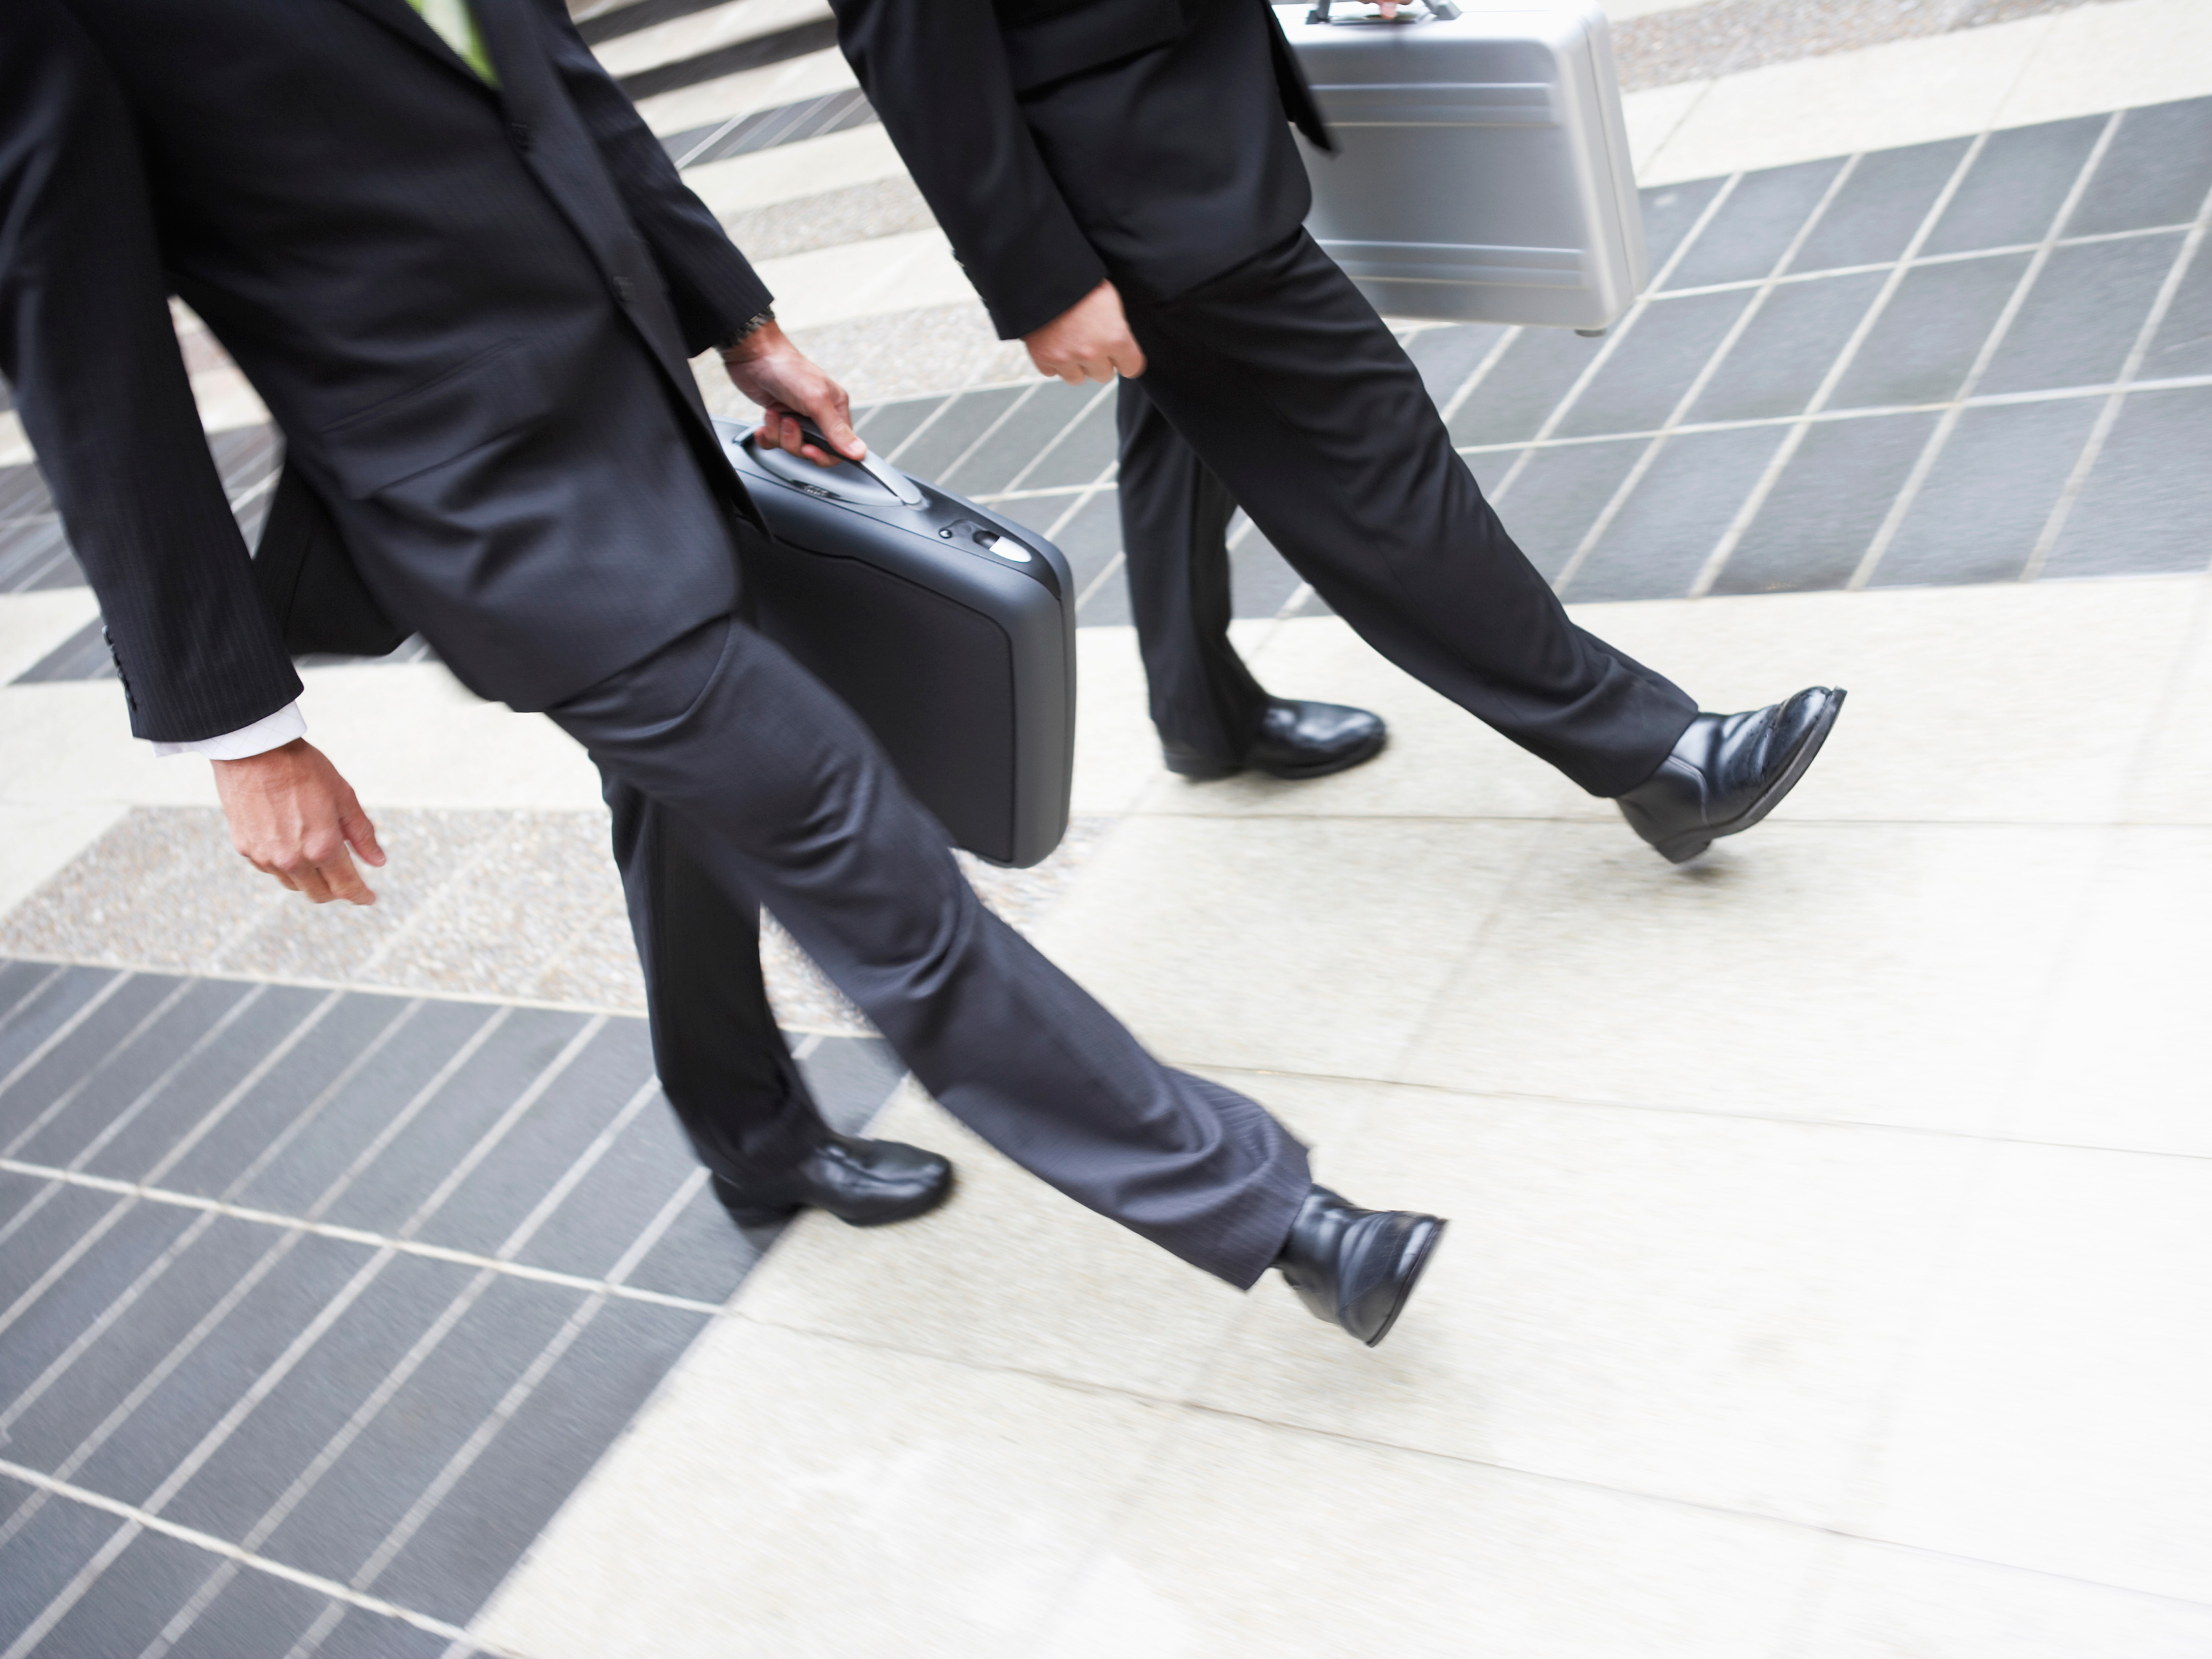 Take the steps to less stress at work